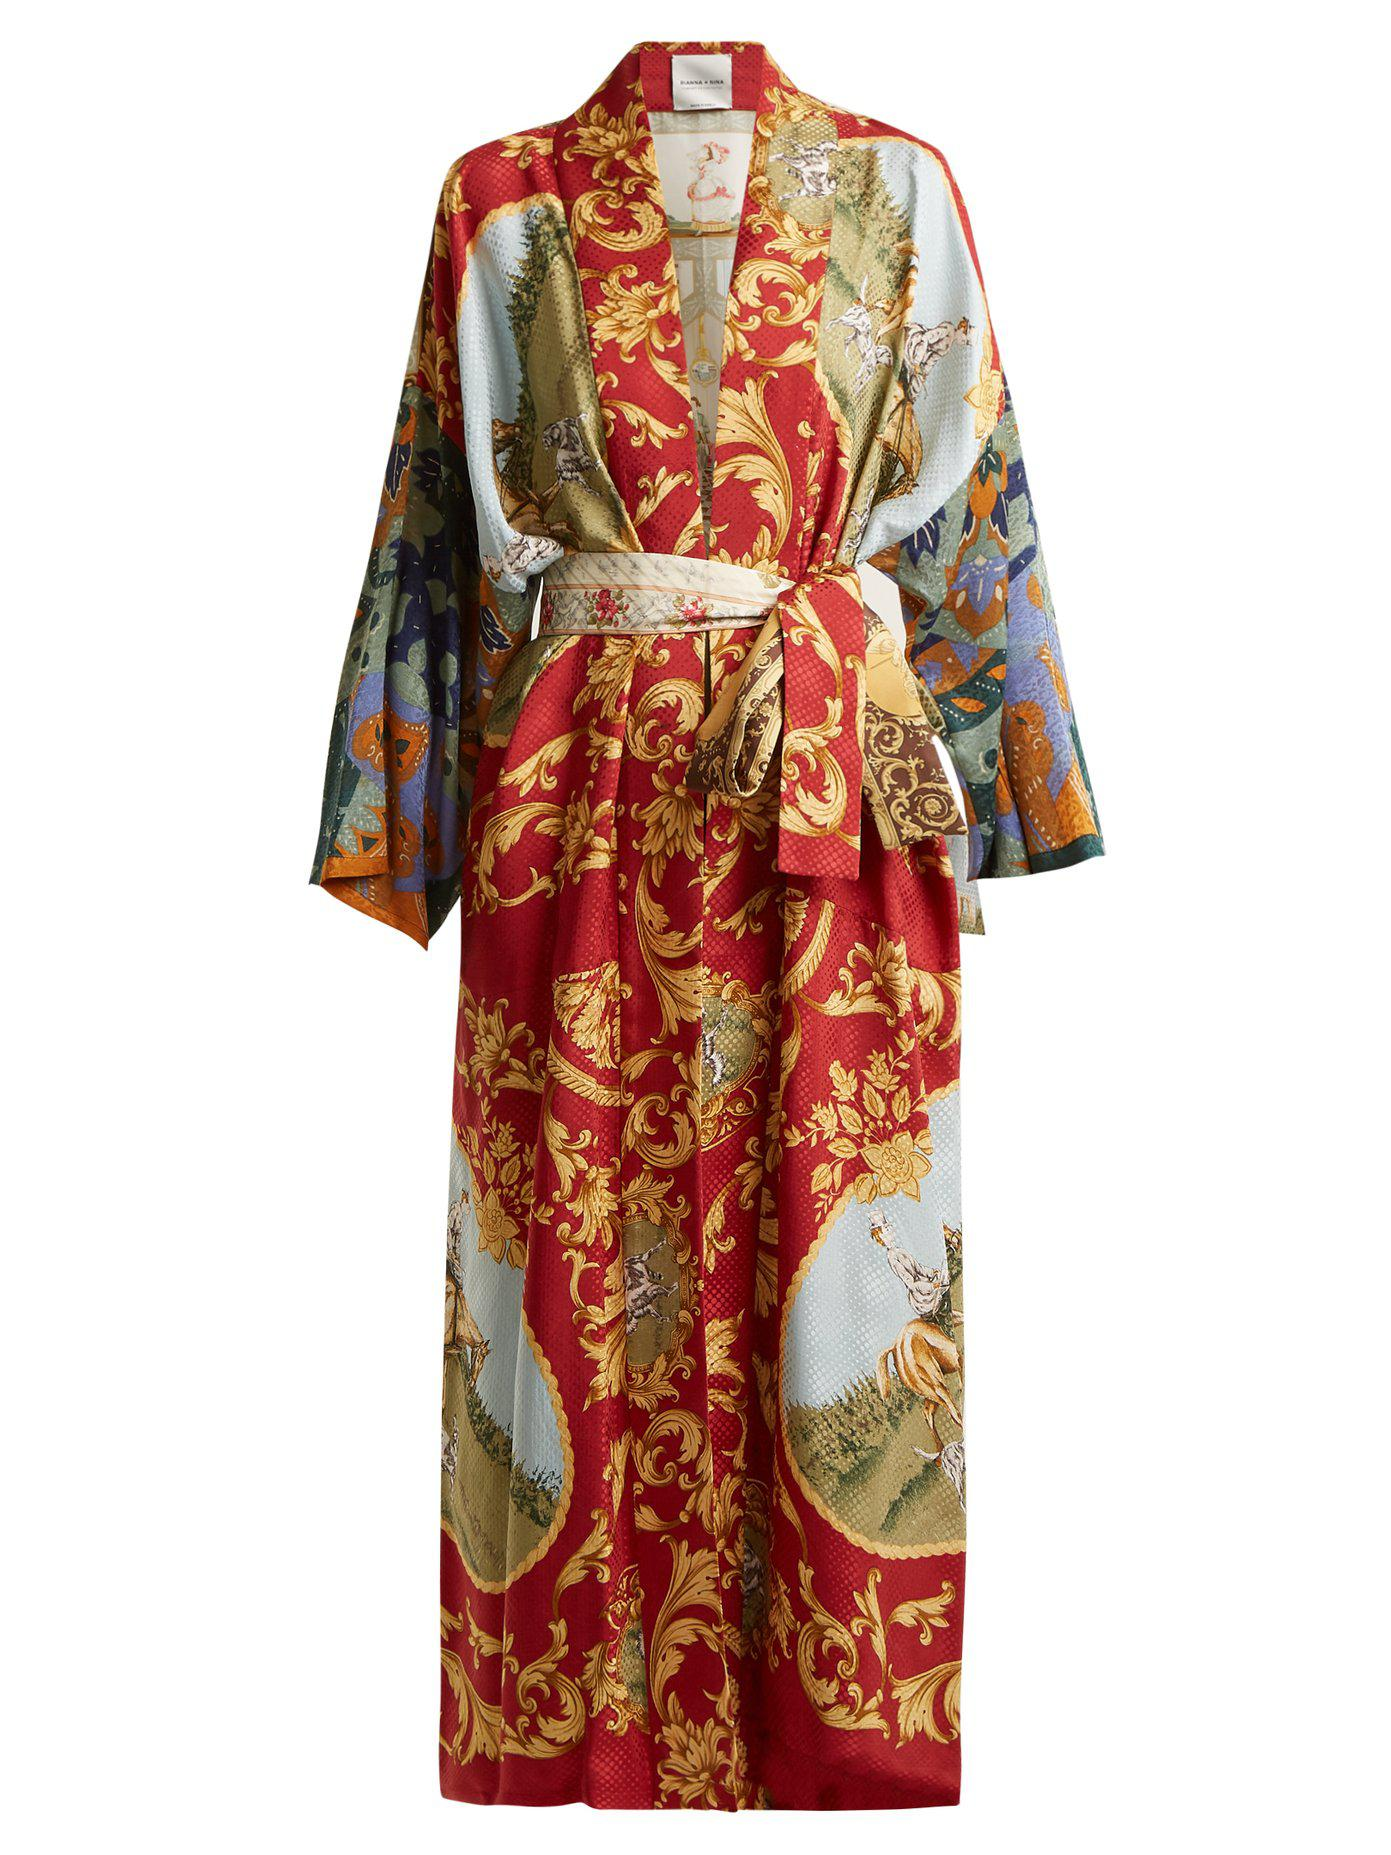 Free Shipping Prices Vintage patchwork silk kimono jacket Rianna + Nina Cheap Wholesale Outlet Clearance dXN9jtFF